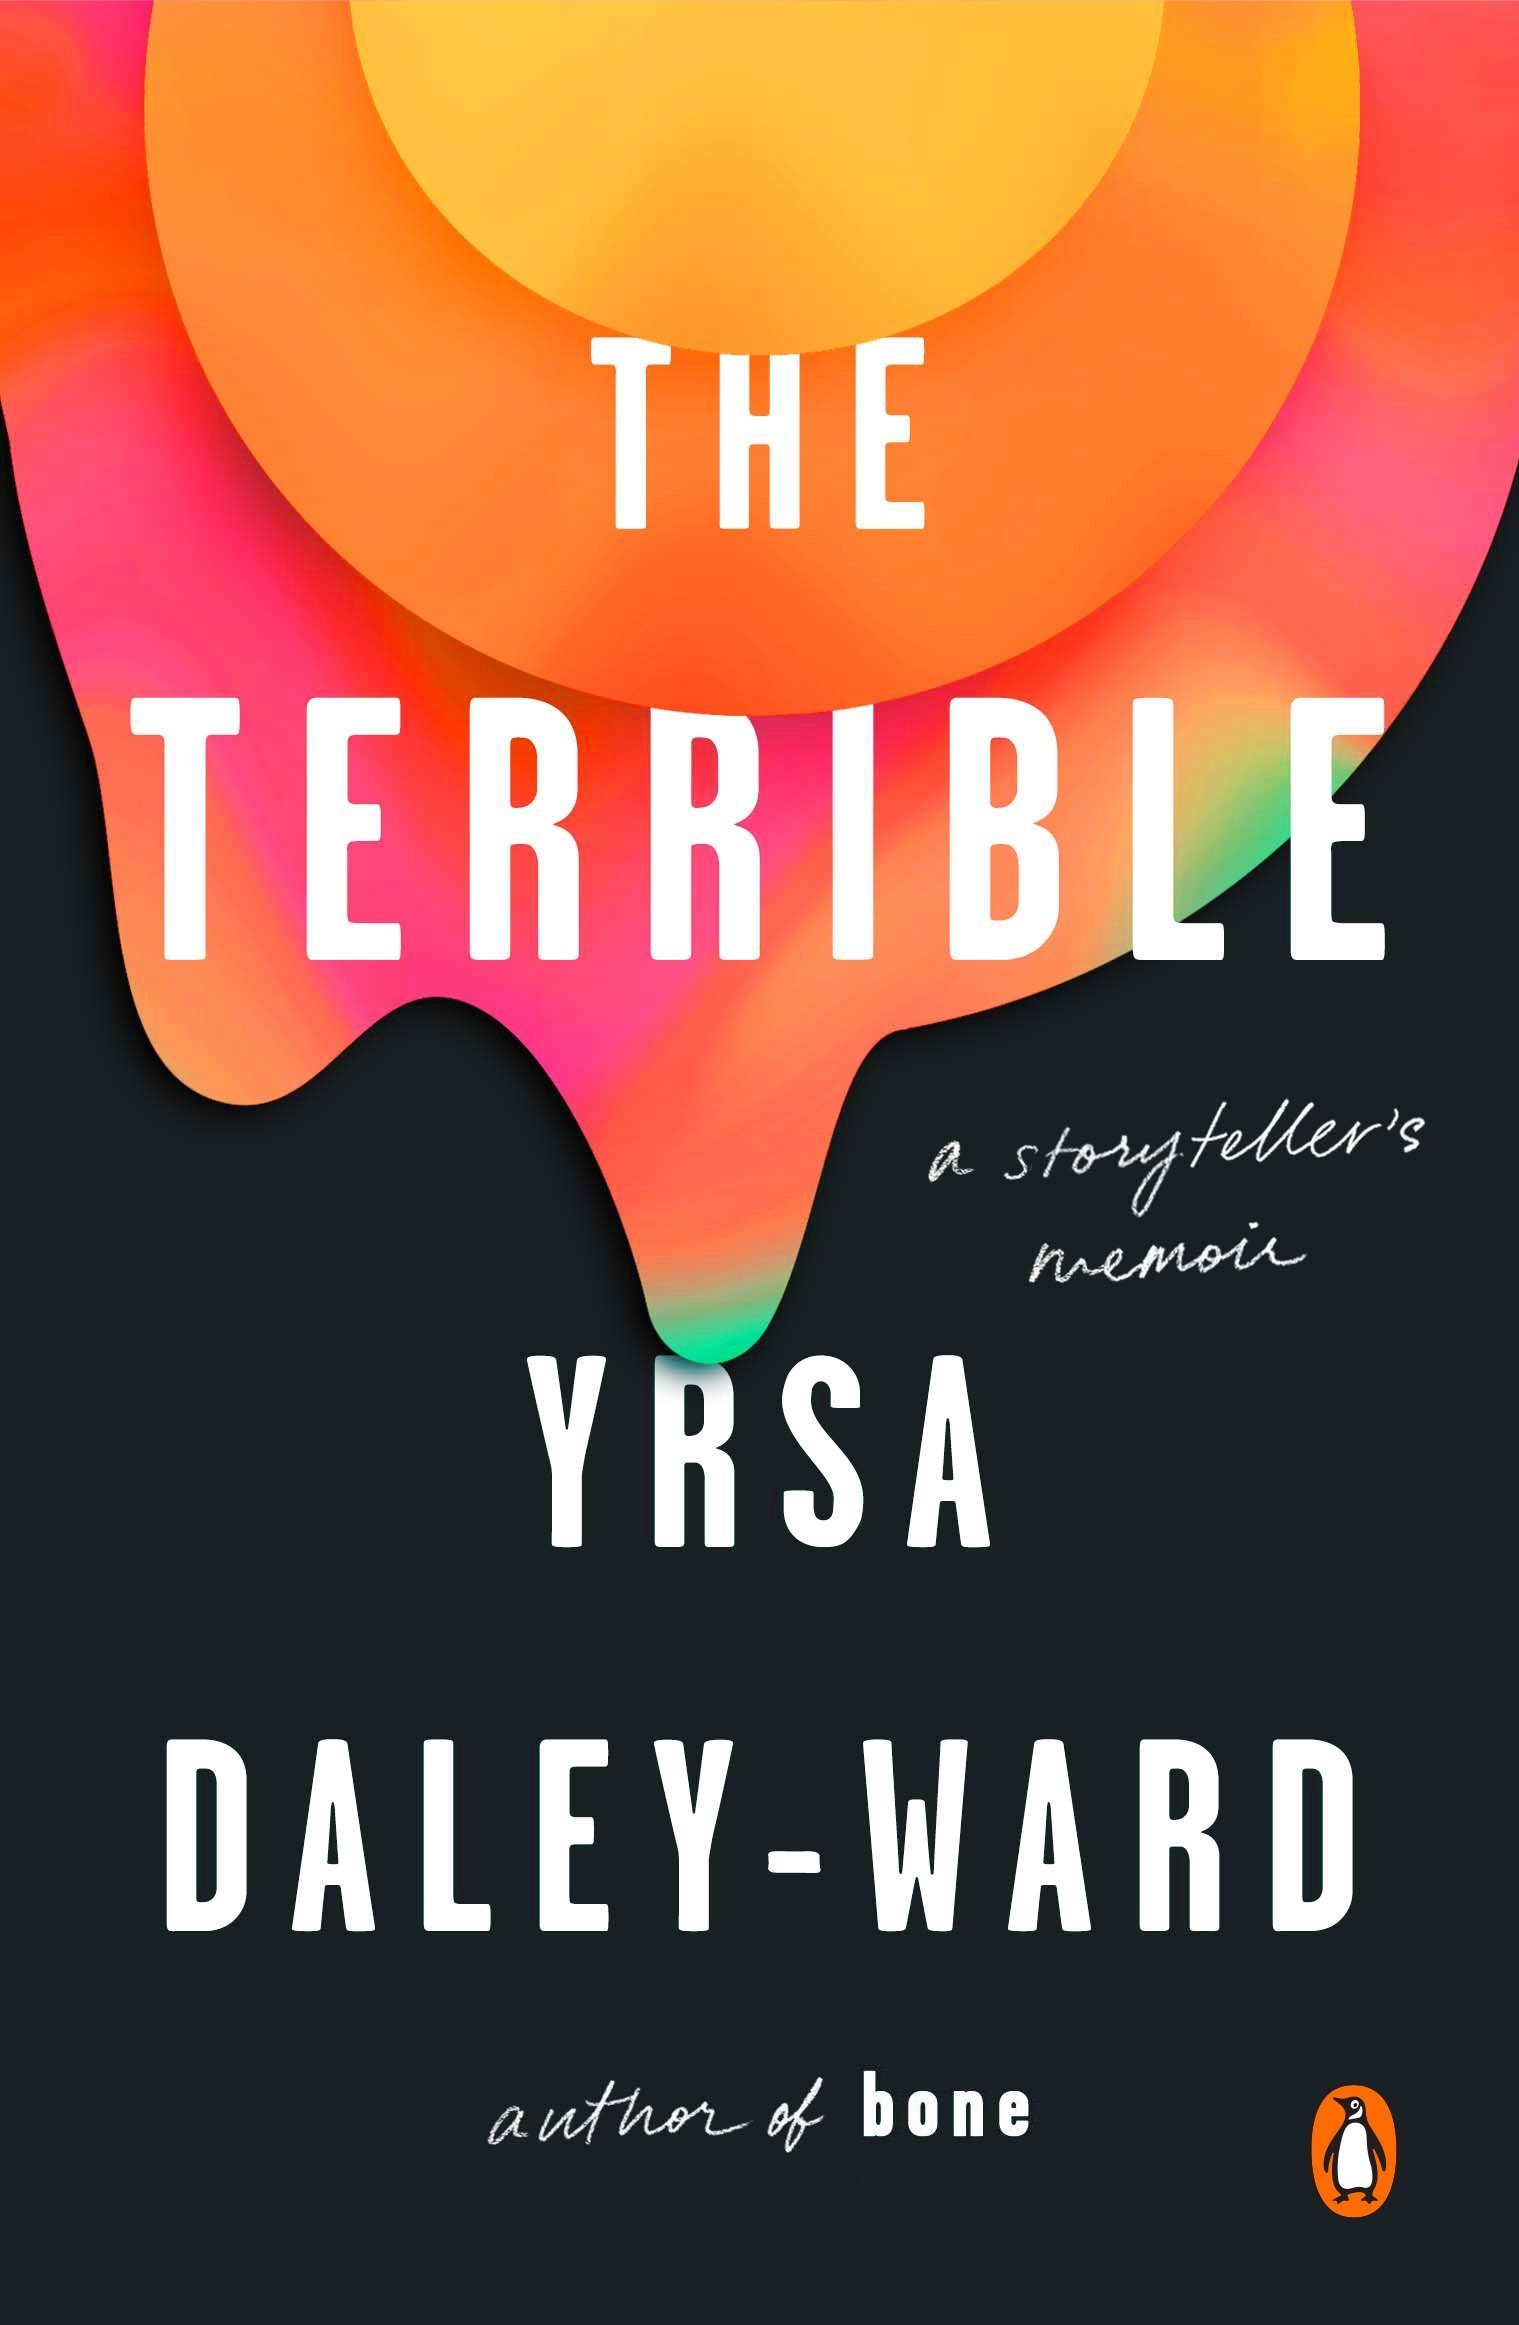 Image result for the terrible yrsa daley ward